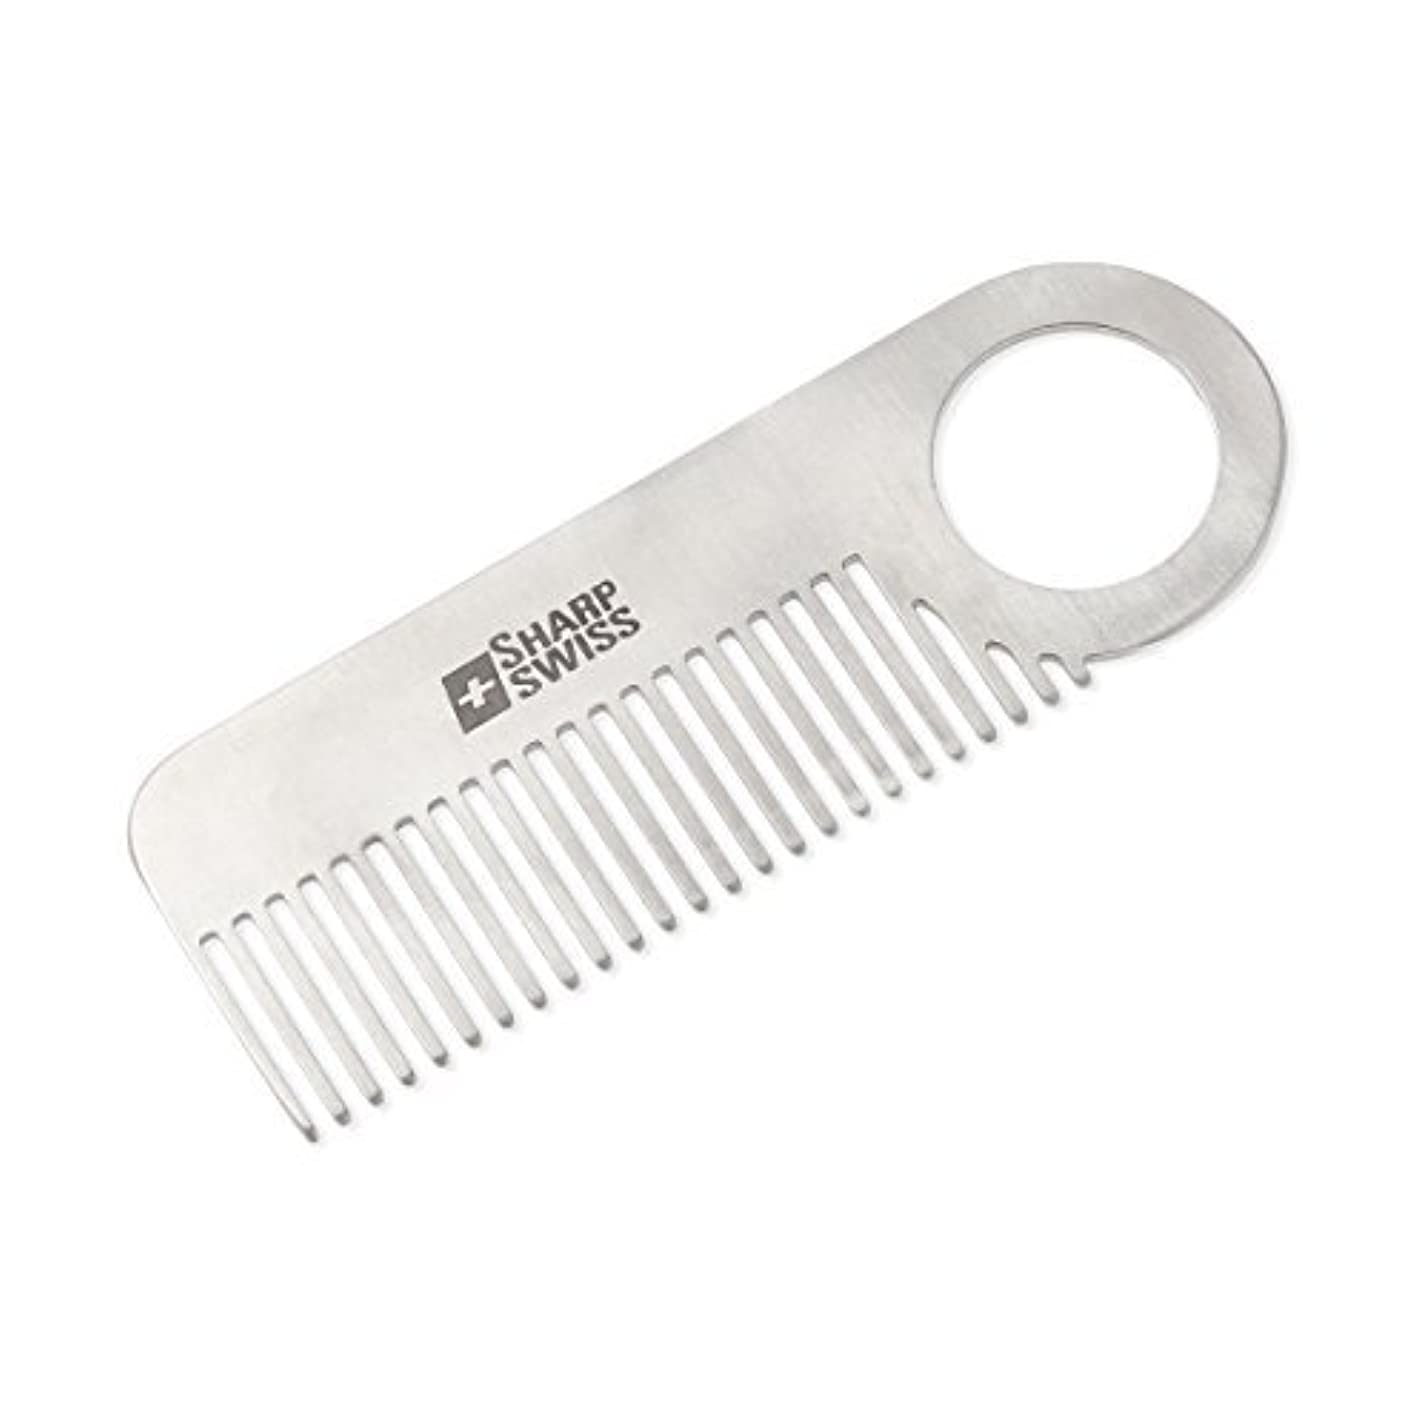 がっかりした普通に不完全なSHARPSWISS Stainless Steel Pocket Hair Combs Men Mini Beard Anti-static Comb 3.95inch [並行輸入品]